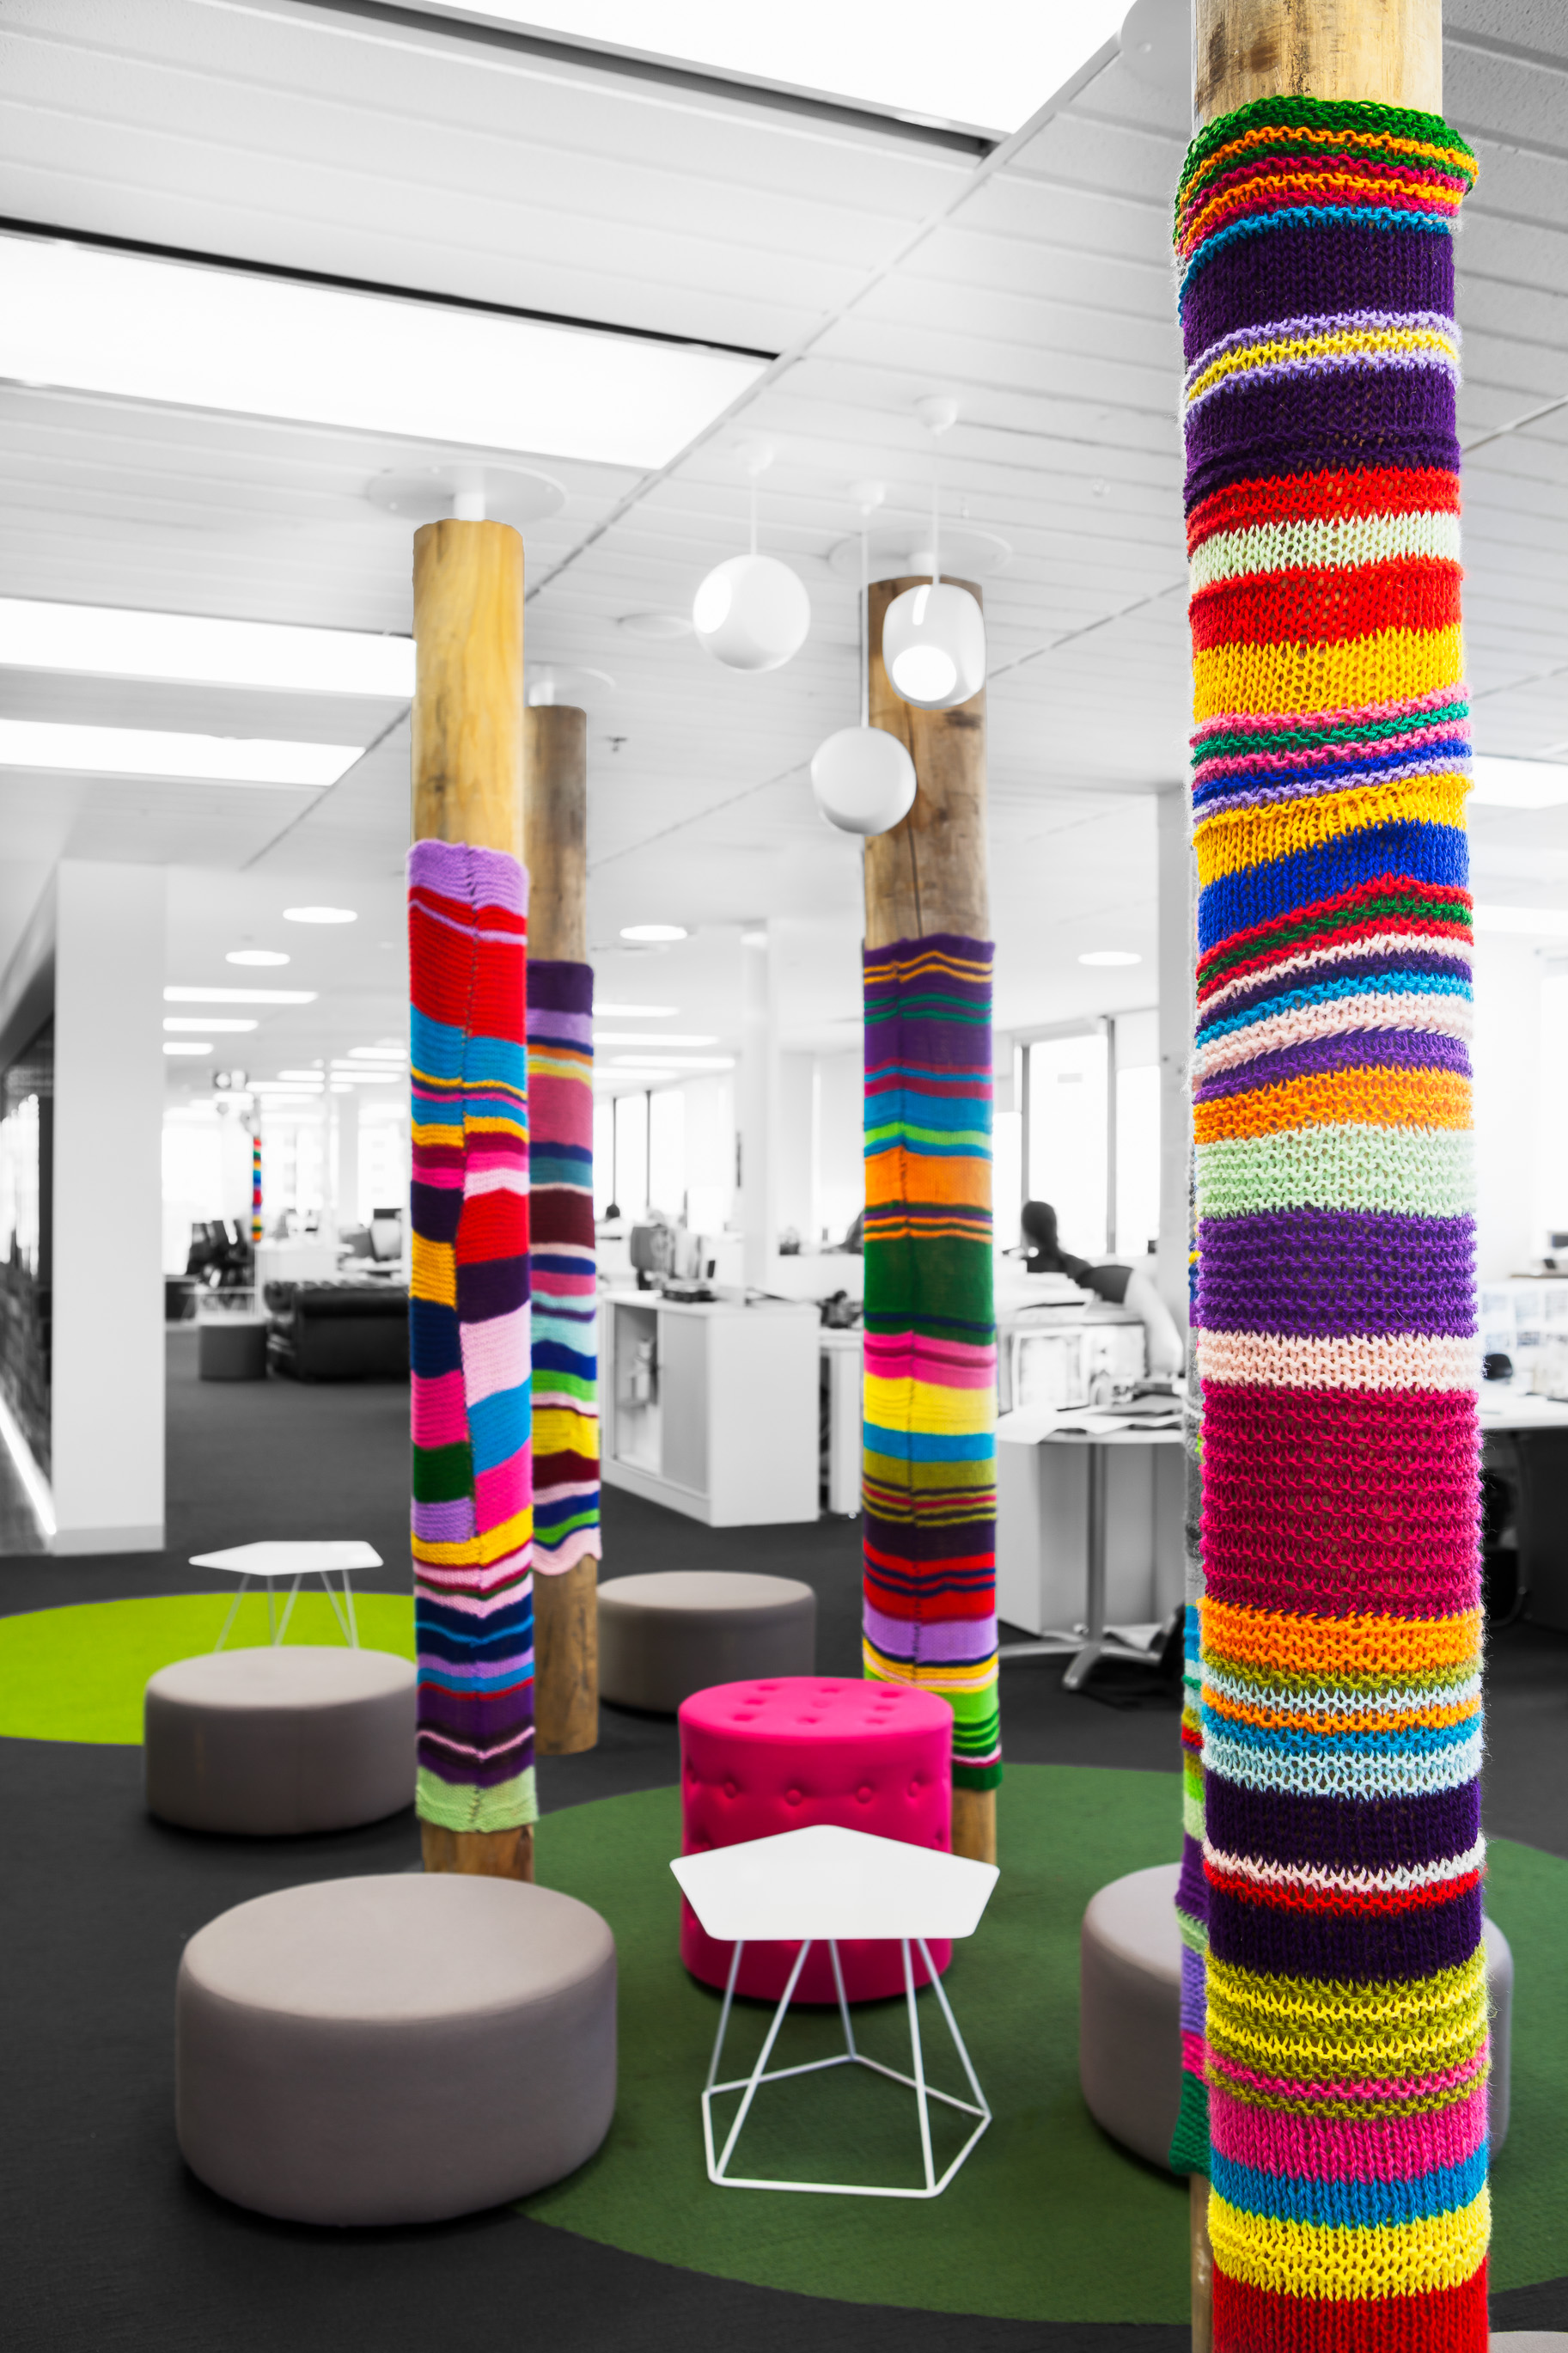 Mediacom north sydney 2012 the bold collective - Como decorar columnas ...